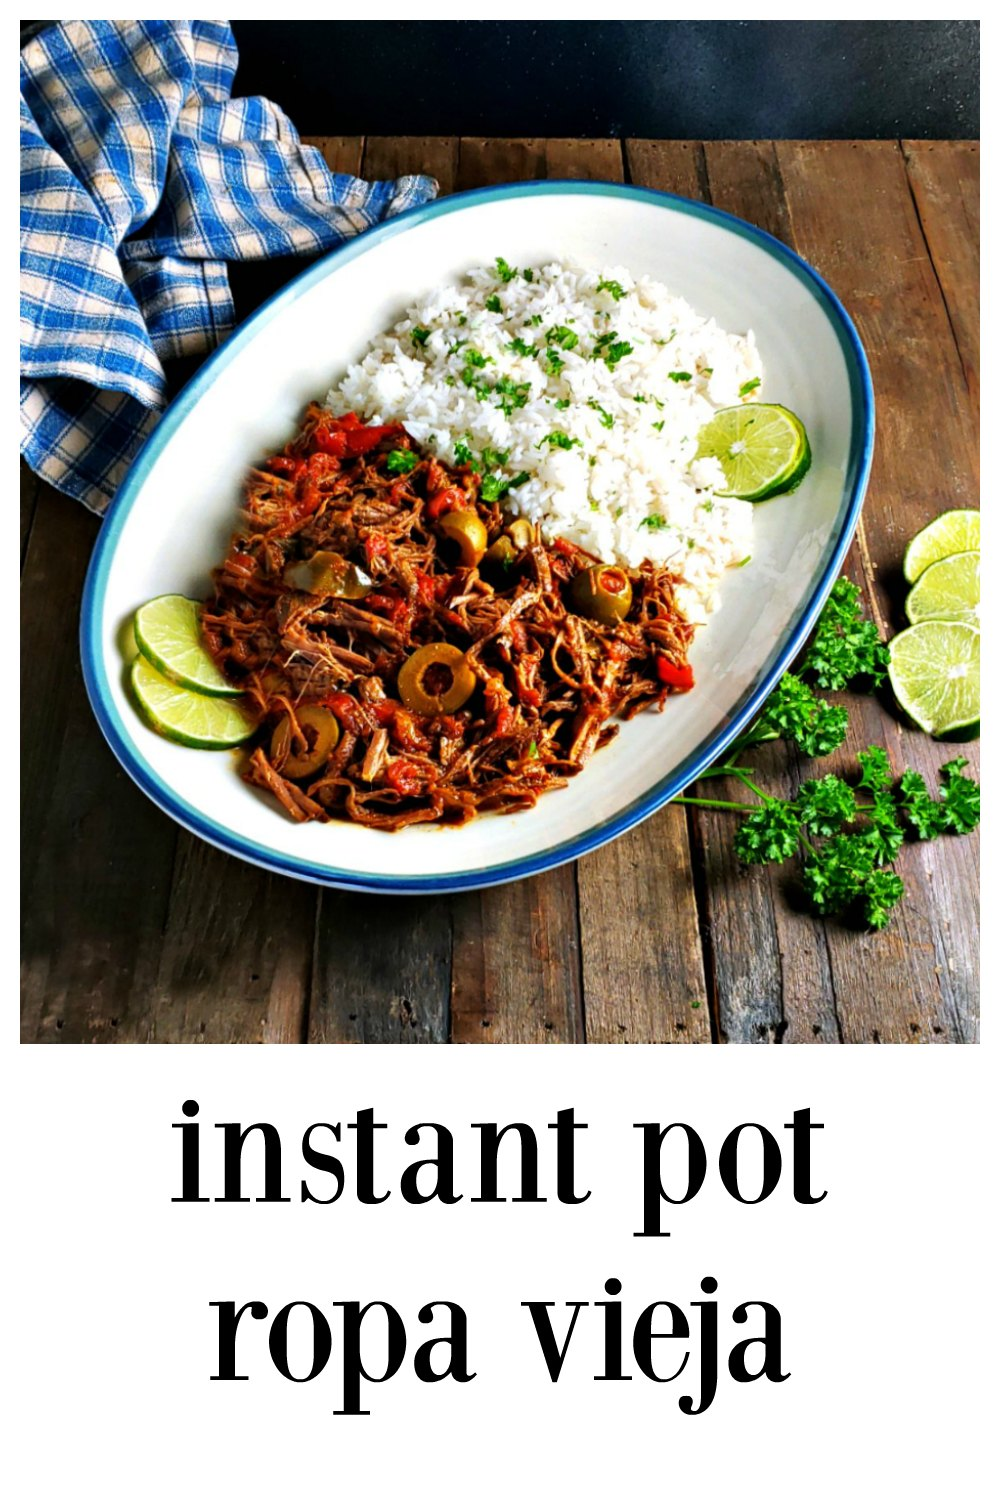 Instant Pot Ropa Vieja will give you all the luscious shreds of beef swimming in a flavorful sauce as a standard recipe in a fraction of the time! So easy, so delish and def great for family, company or Meal Prep. I have a slow cooker version on my site, too. #RopaVieja #InstantPotRopaVieja #InstantPotRecipes #CubanRecipes #MealPrep